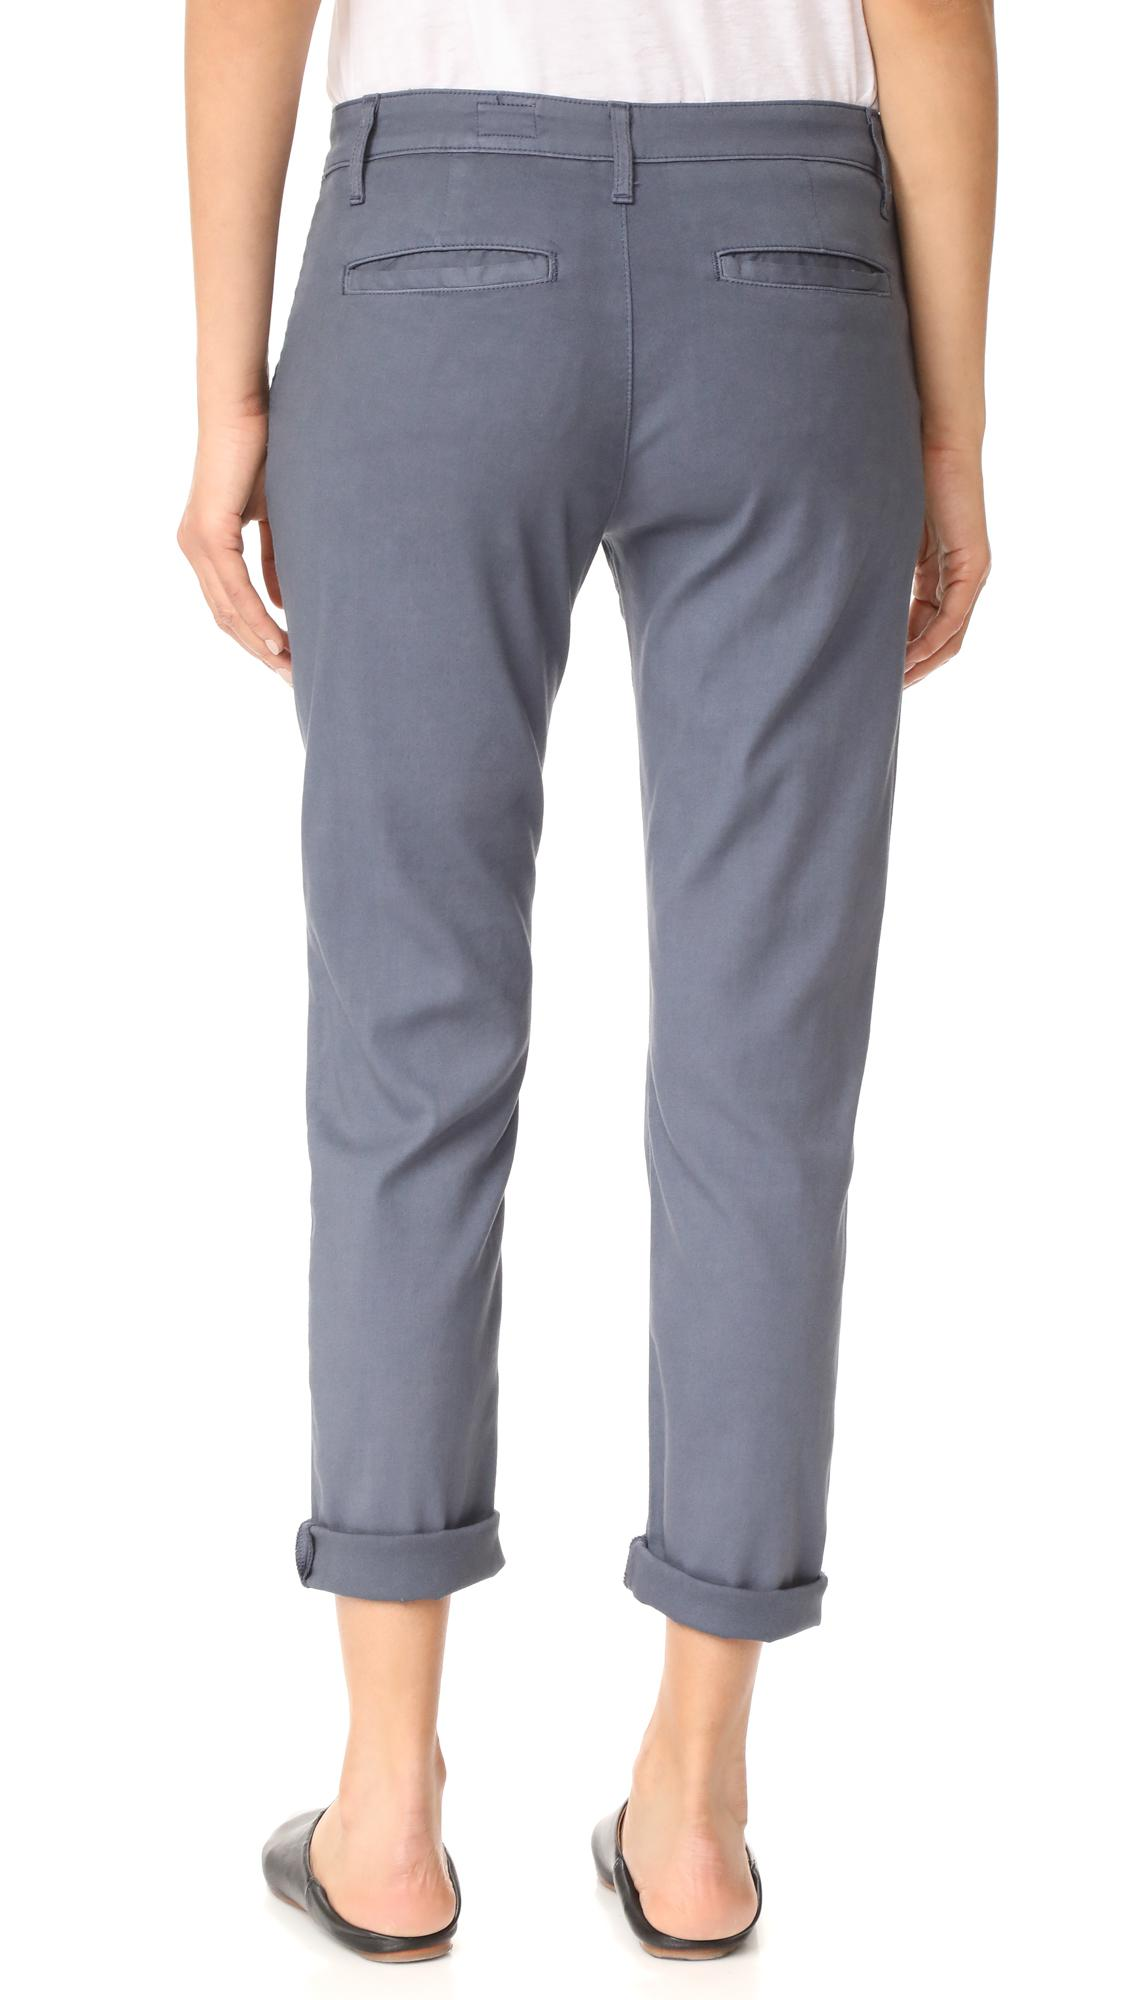 AG Jeans Cotton The Caden Tailored Trousers in Blue